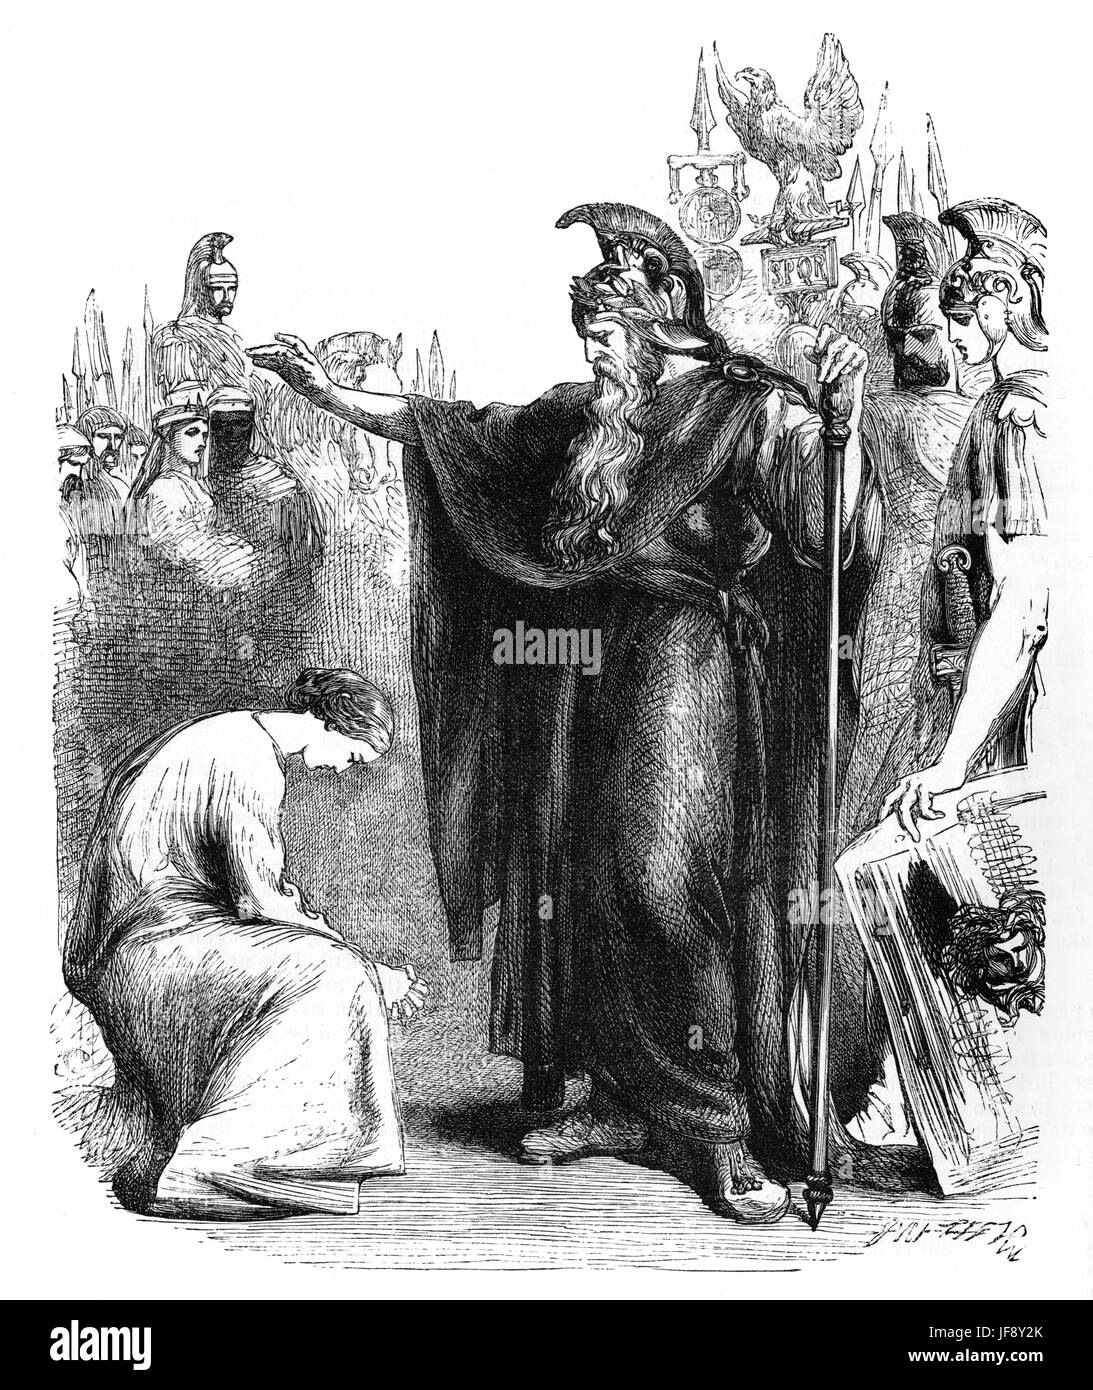 Titus Andronicus, play by William Shakespeare (26 April 1564 – 23 April 1616). Act 1 scene 2, Lavinia kneels before - Stock Image